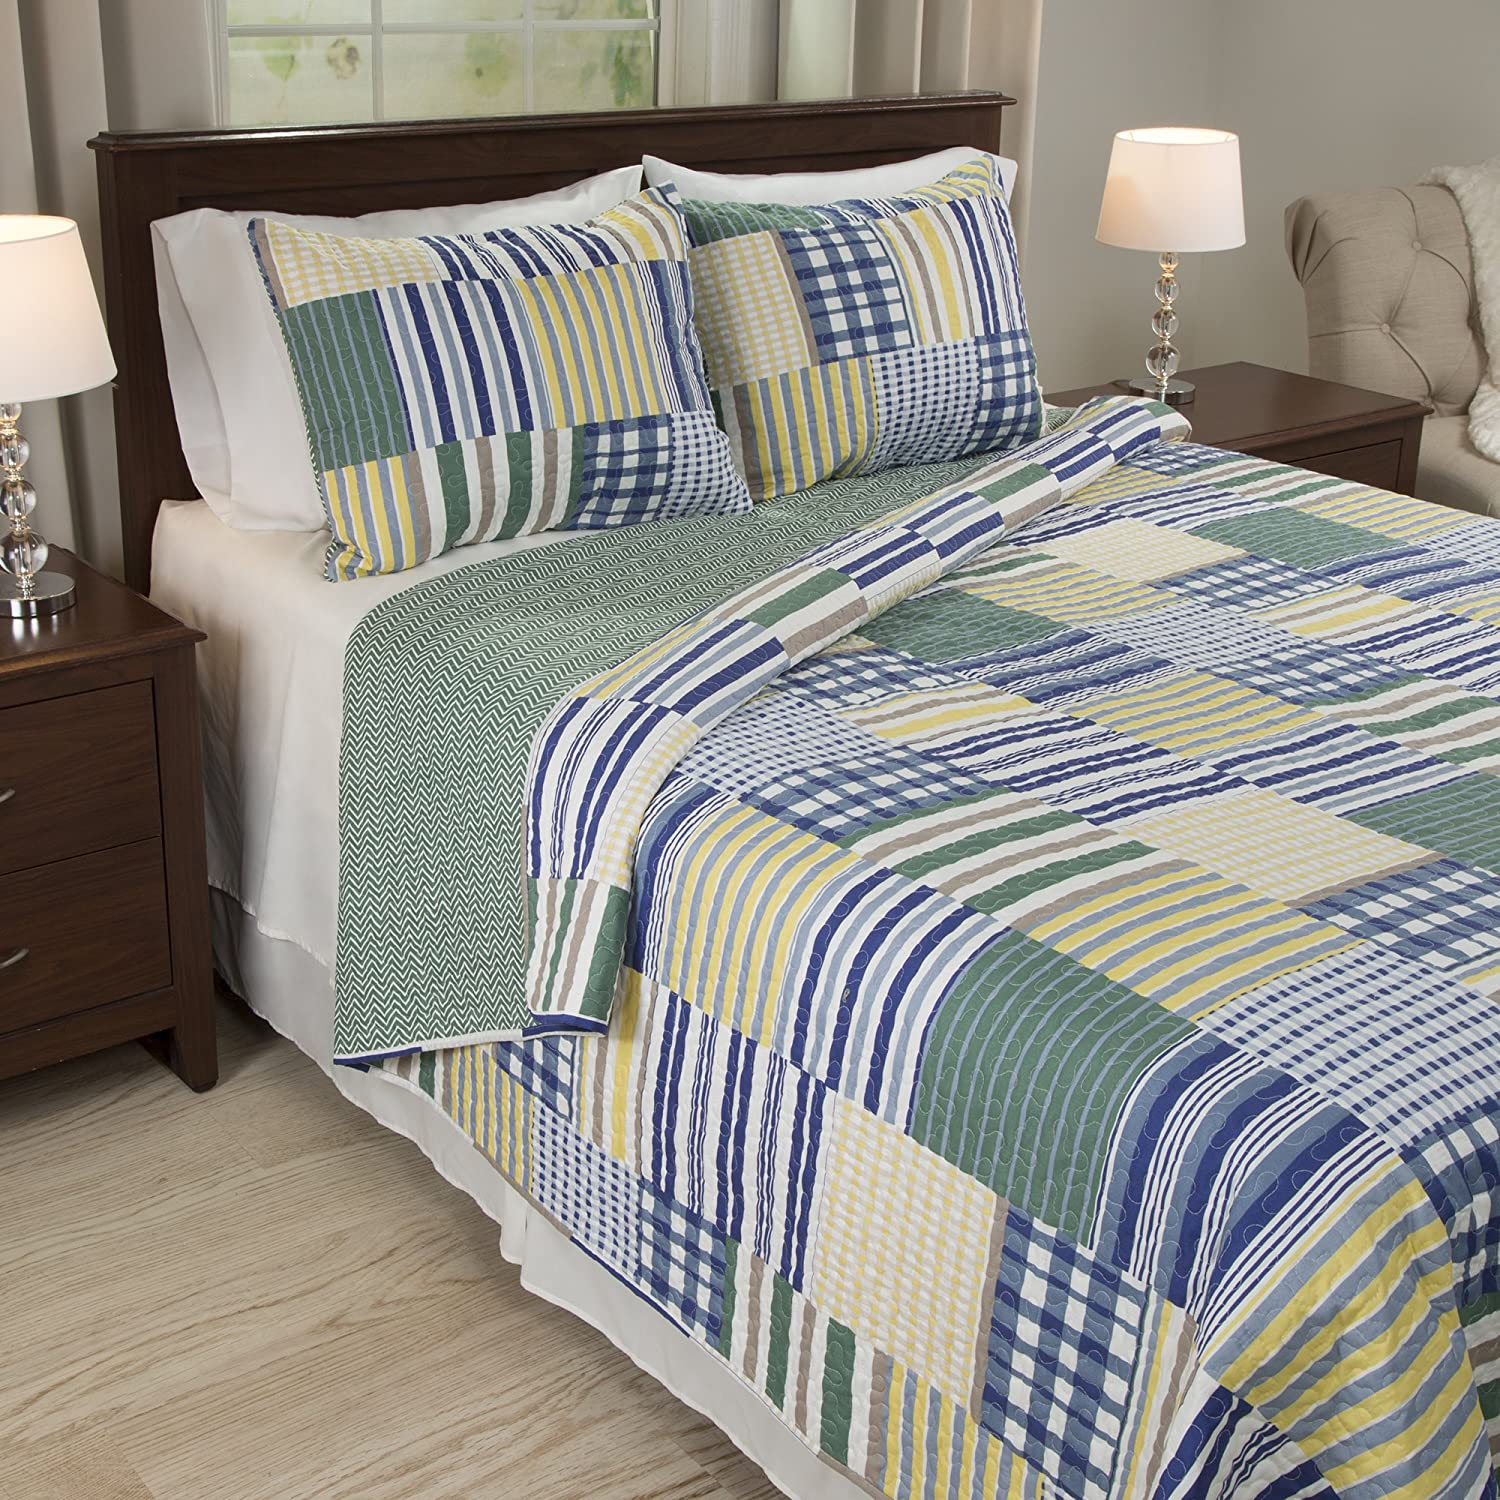 Bedford Home Lynsey 3 Piece Quilt Set - Full/Queen